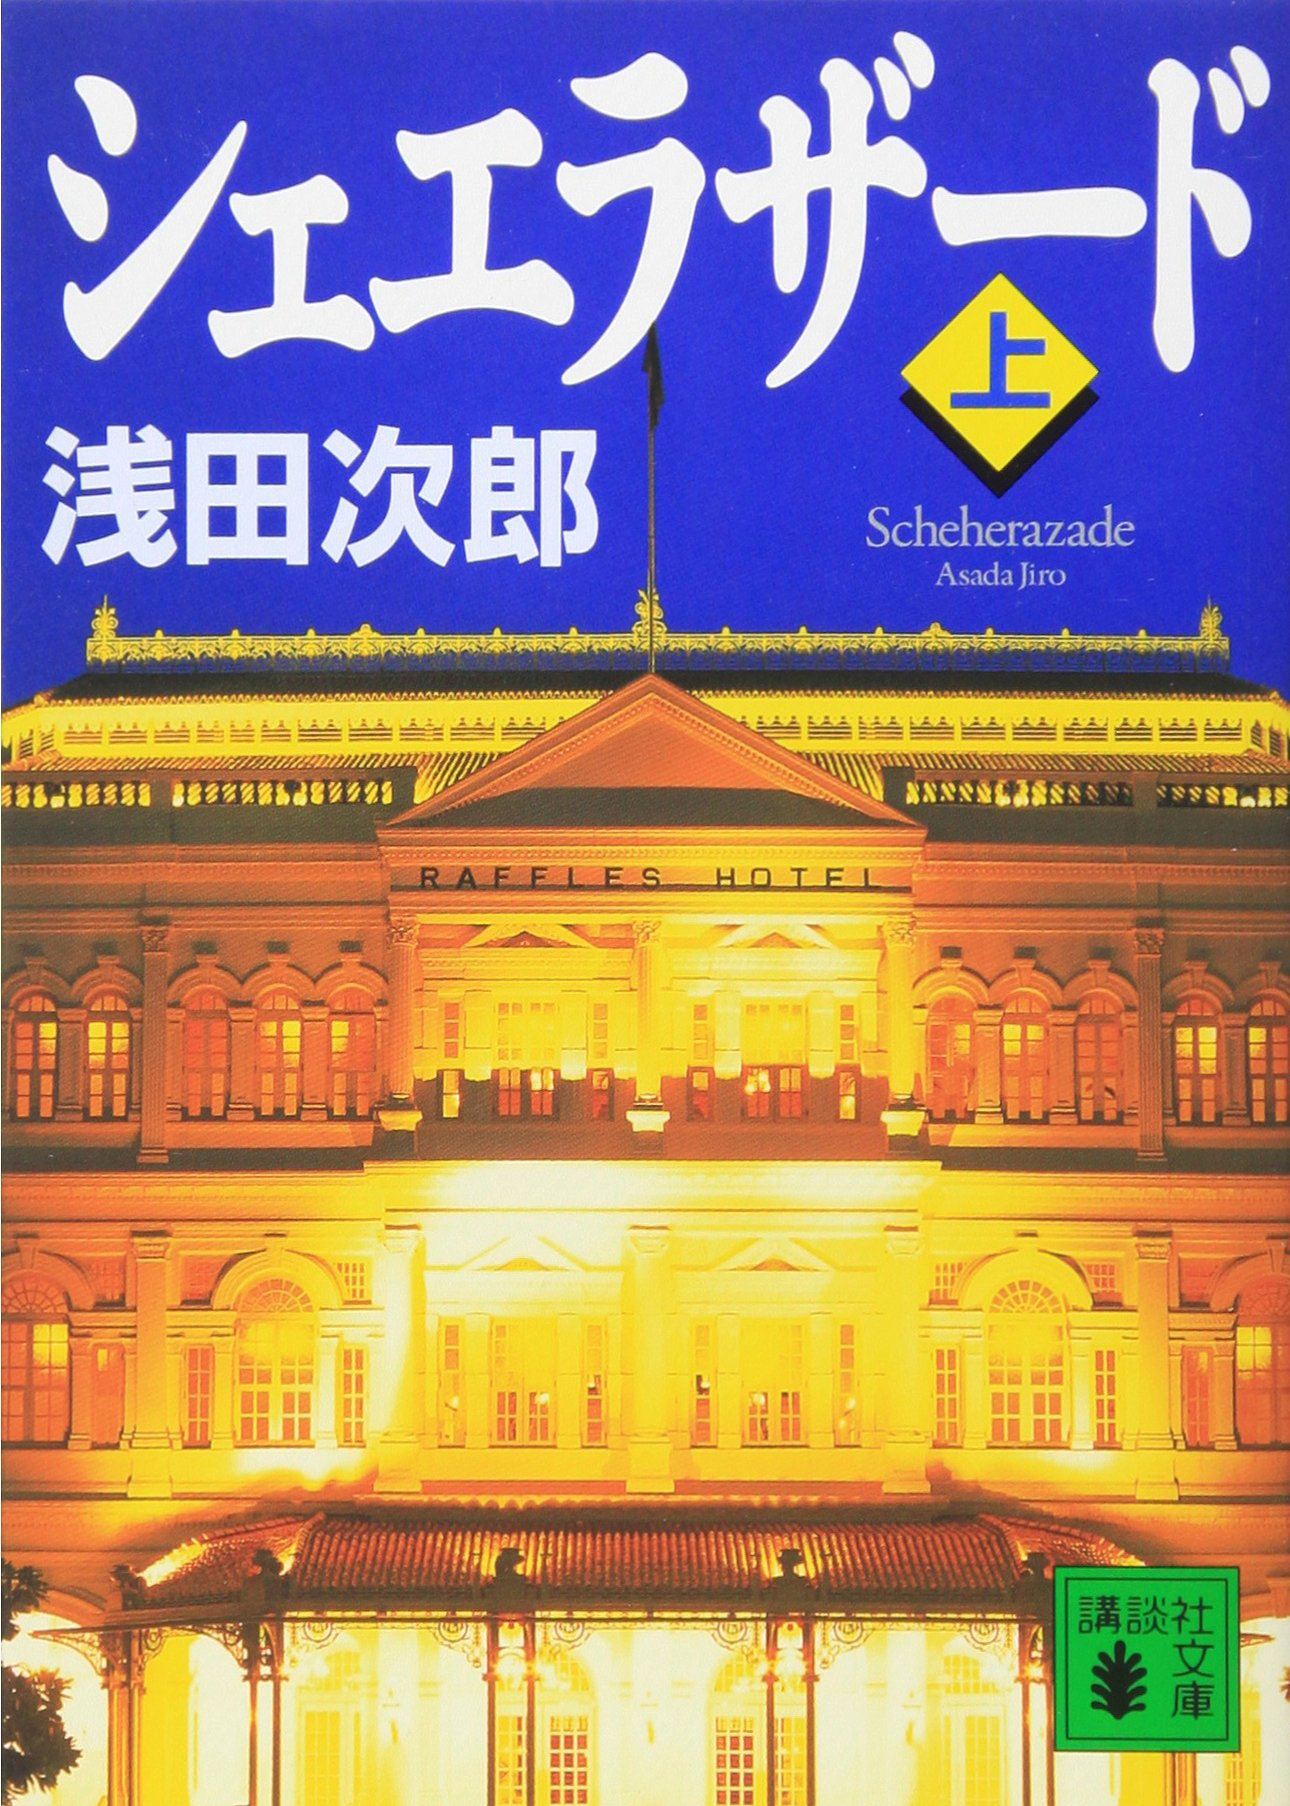 Scheherazade (Vol. 1) [in Japanese Language]: Asada Jiro: 9784062736091:  Amazon.com: Books